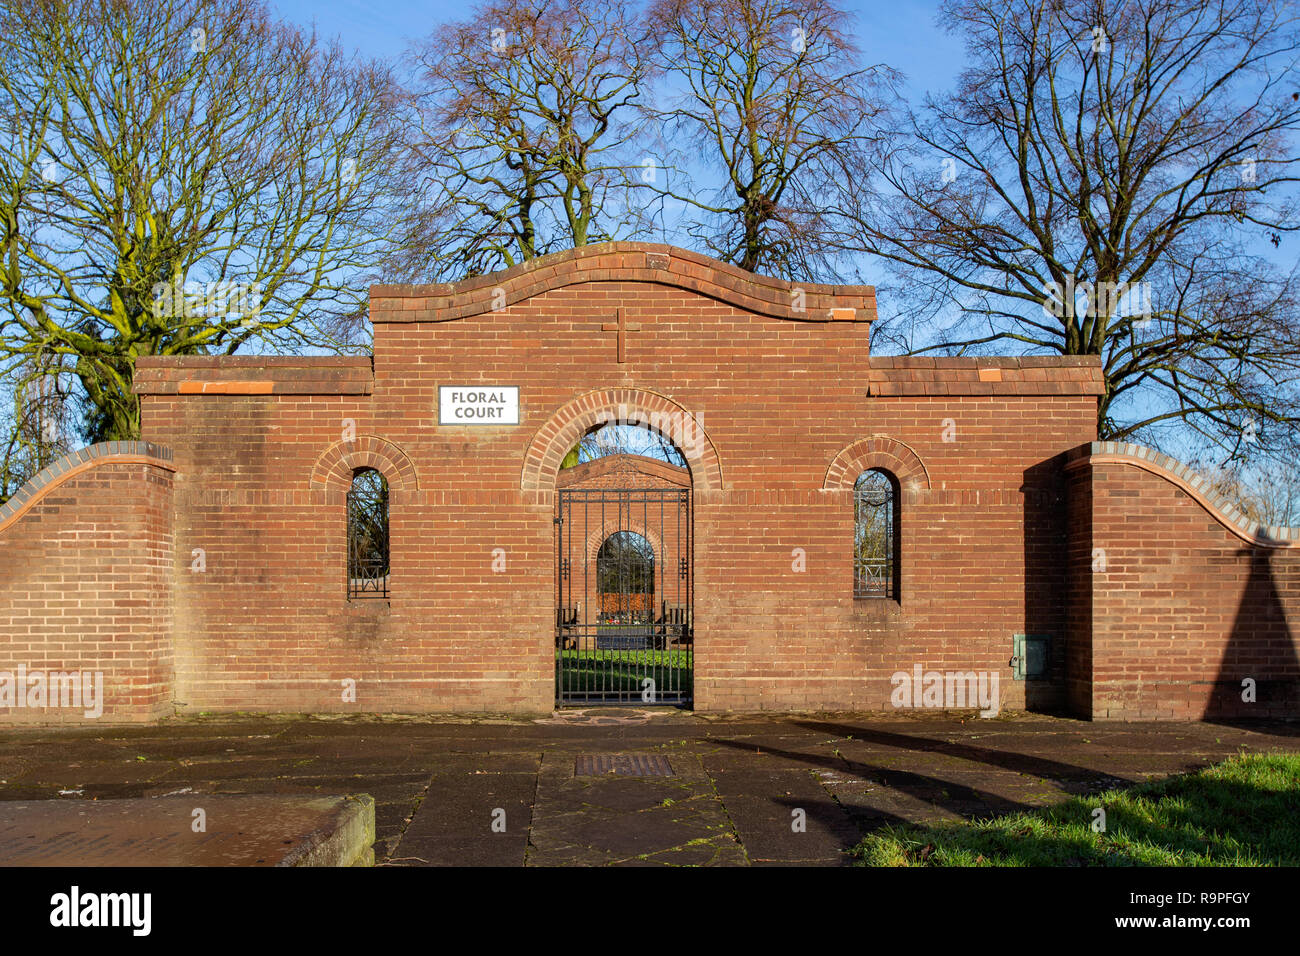 Entrance to floral court at Crewe cemetery, Crewe Cheshire UK Stock Photo